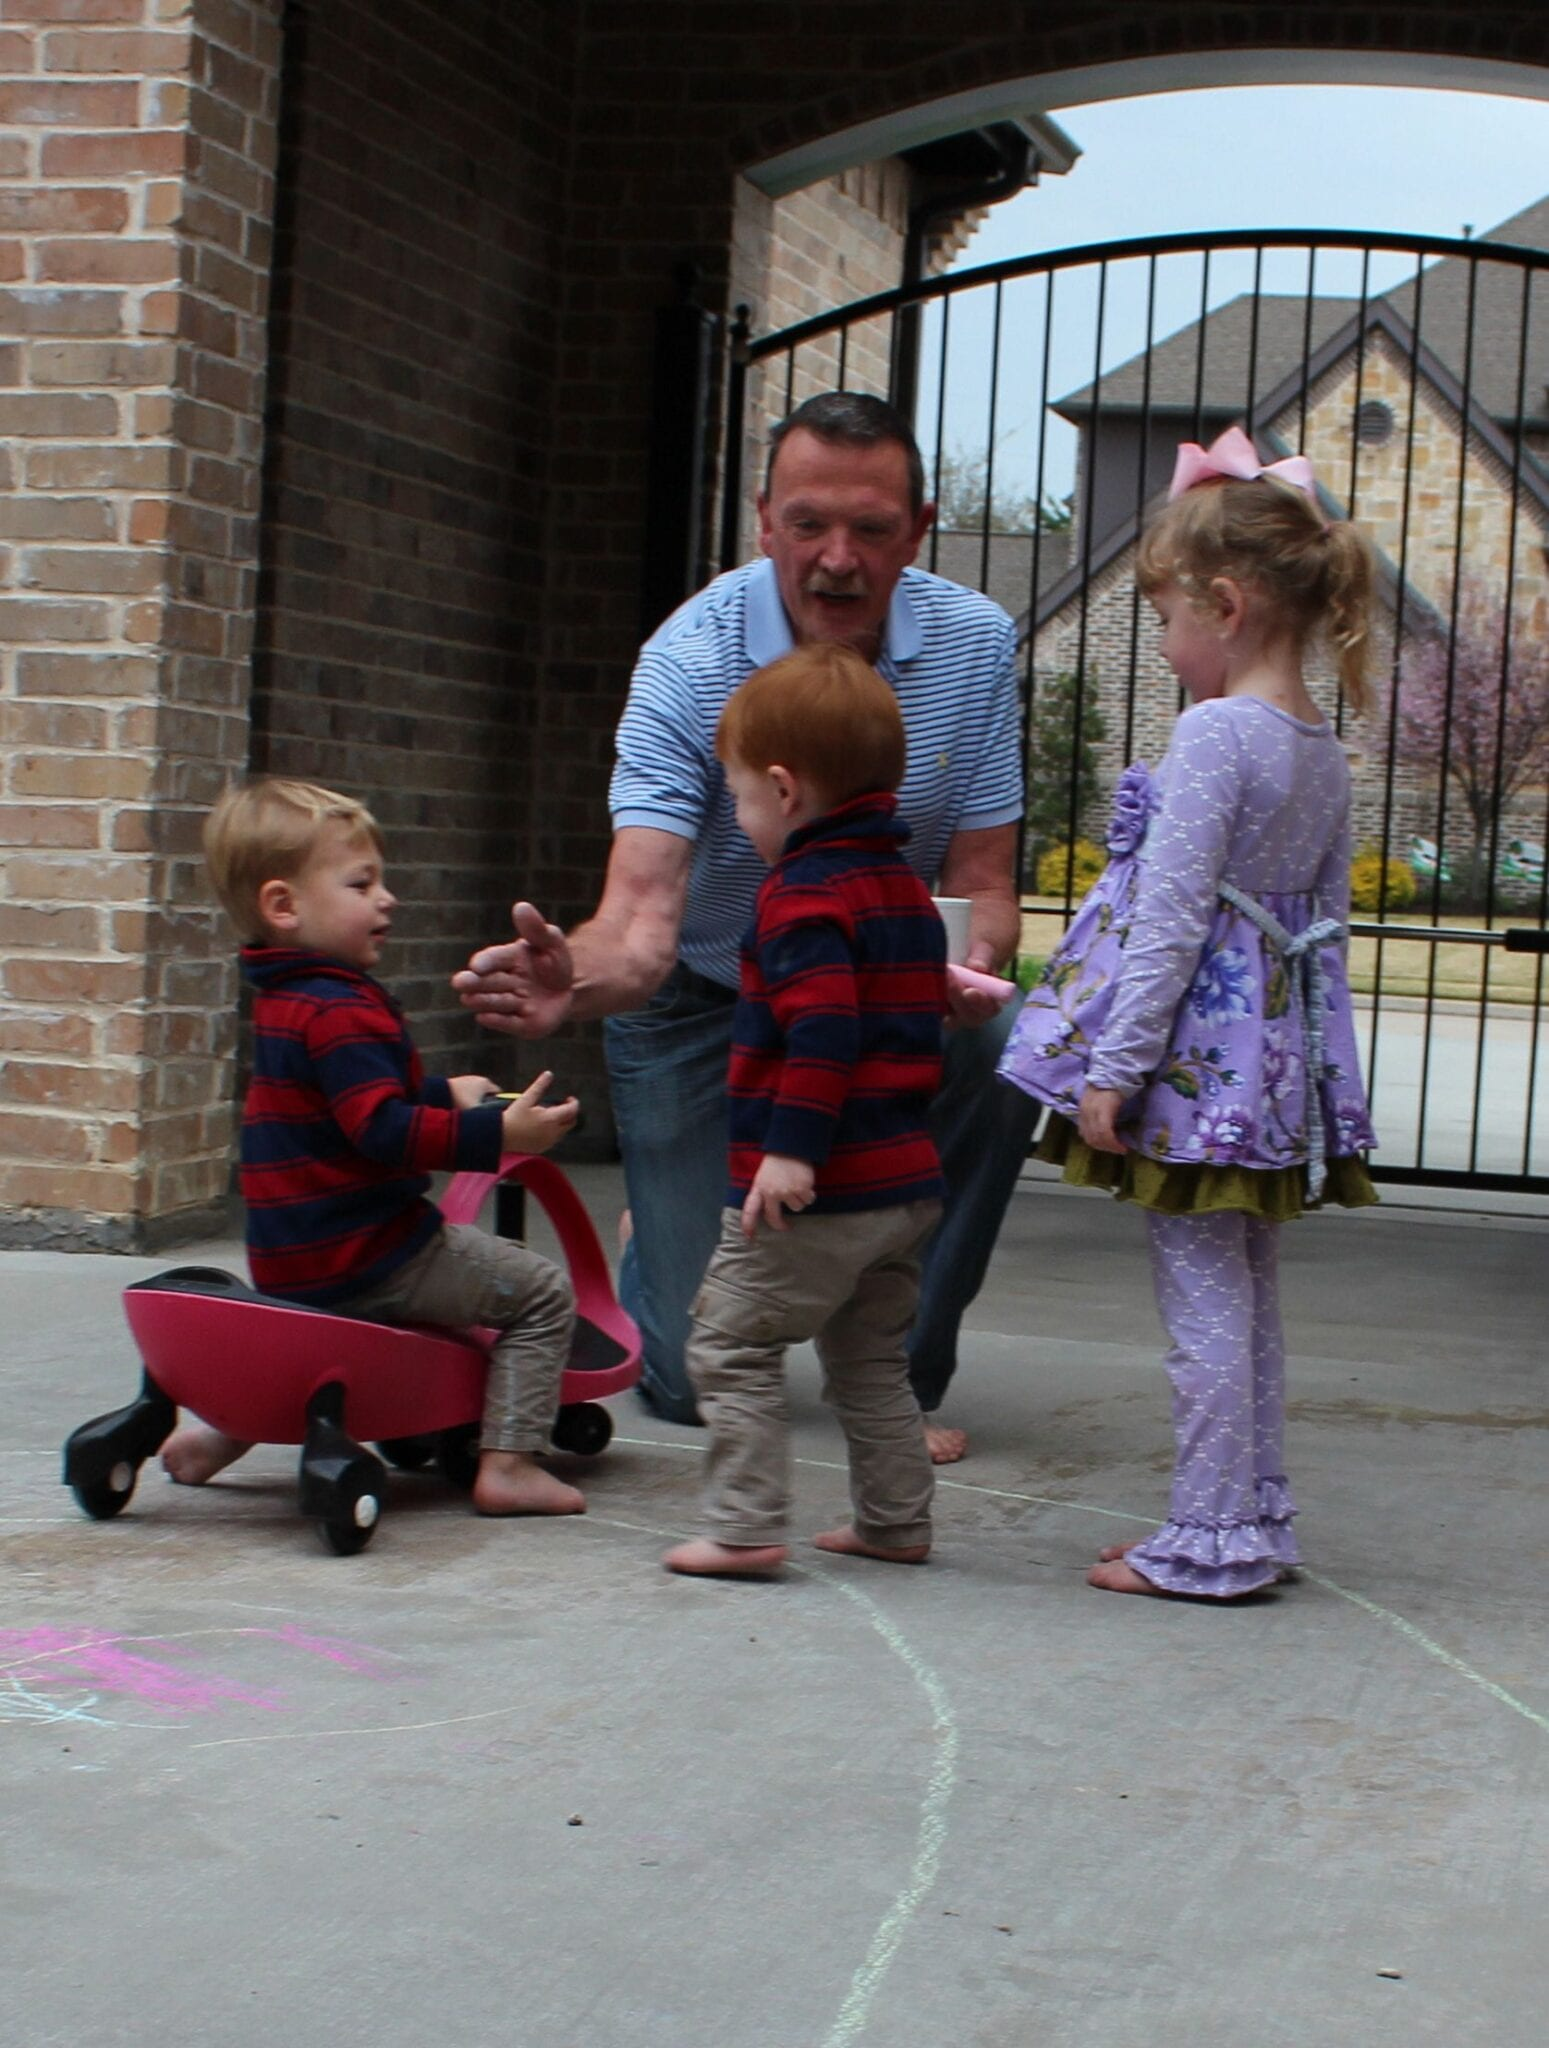 My Dad Came to Visit- He Taught the Kids to Follow the Road!